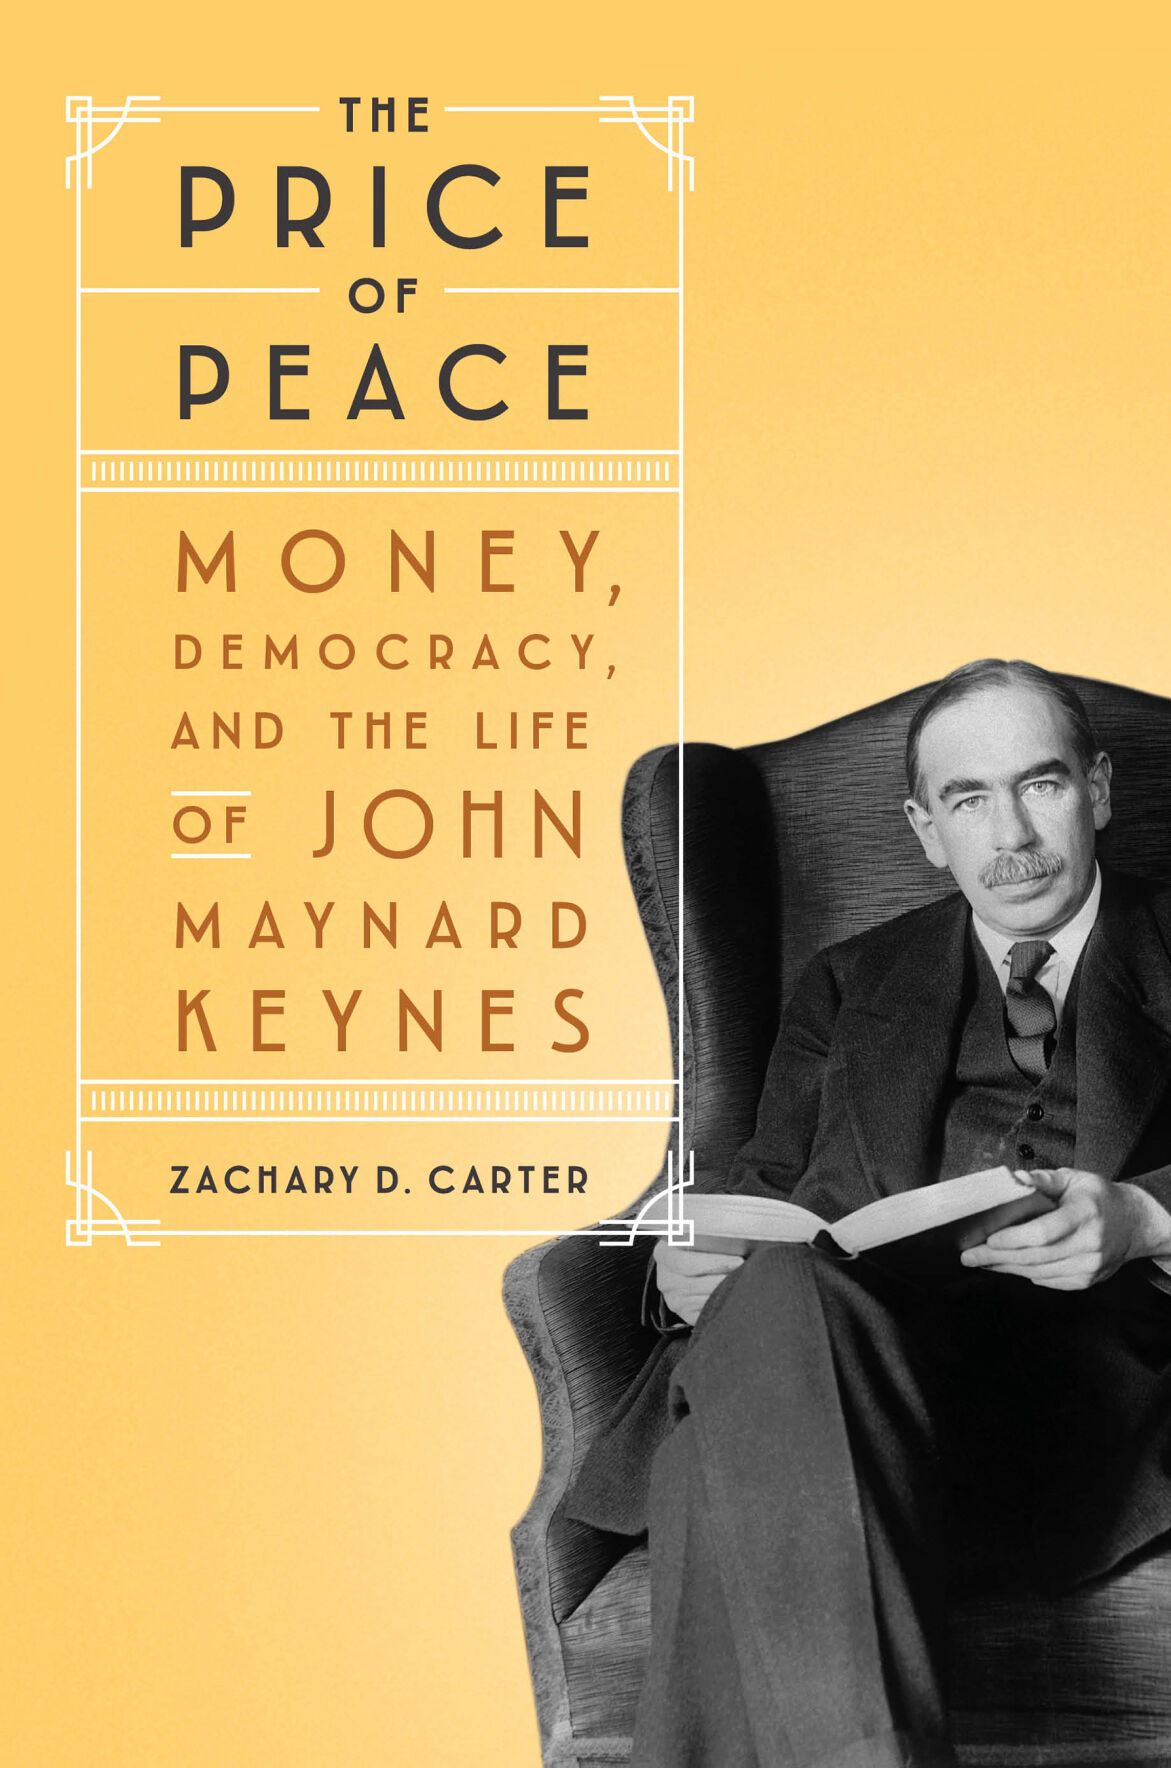 'The Price of Peace' by Zachary Carter